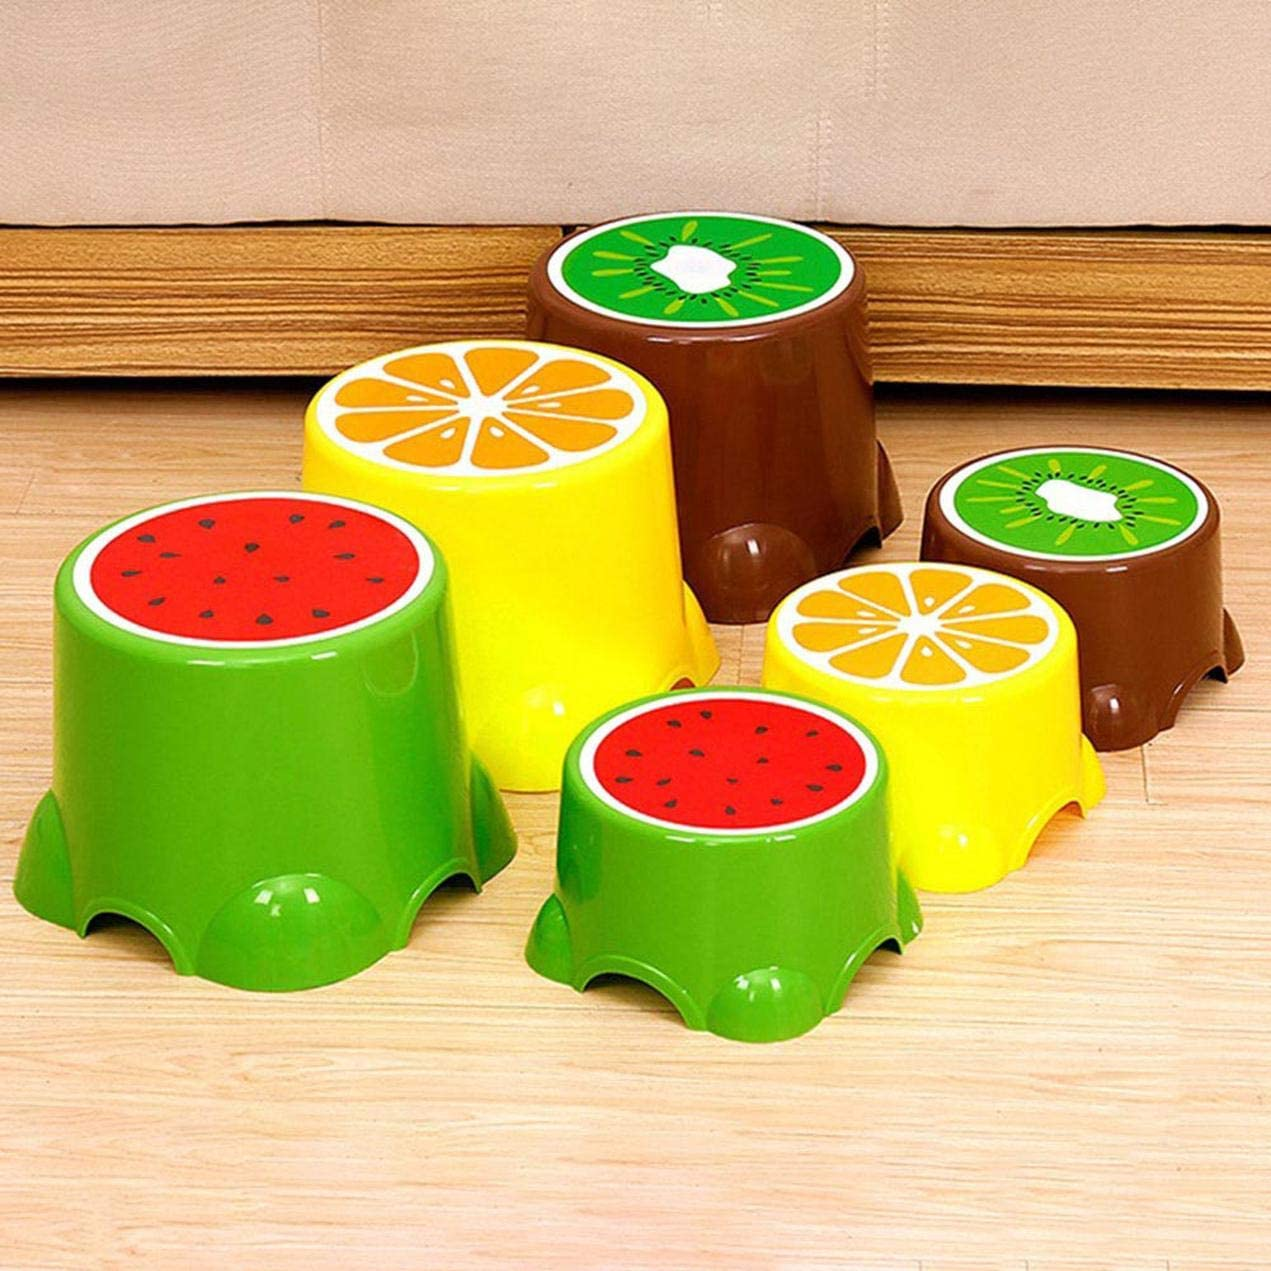 24cmx21cm for Home Decoration None Large lemon C06J6 dfgjdryt Wonderful Chris-Wang 1Pack Cute//Adorable Anti-Slip Safty Fruit Style Plastic Foot Rest Stool Stepstool for Kids//Adults